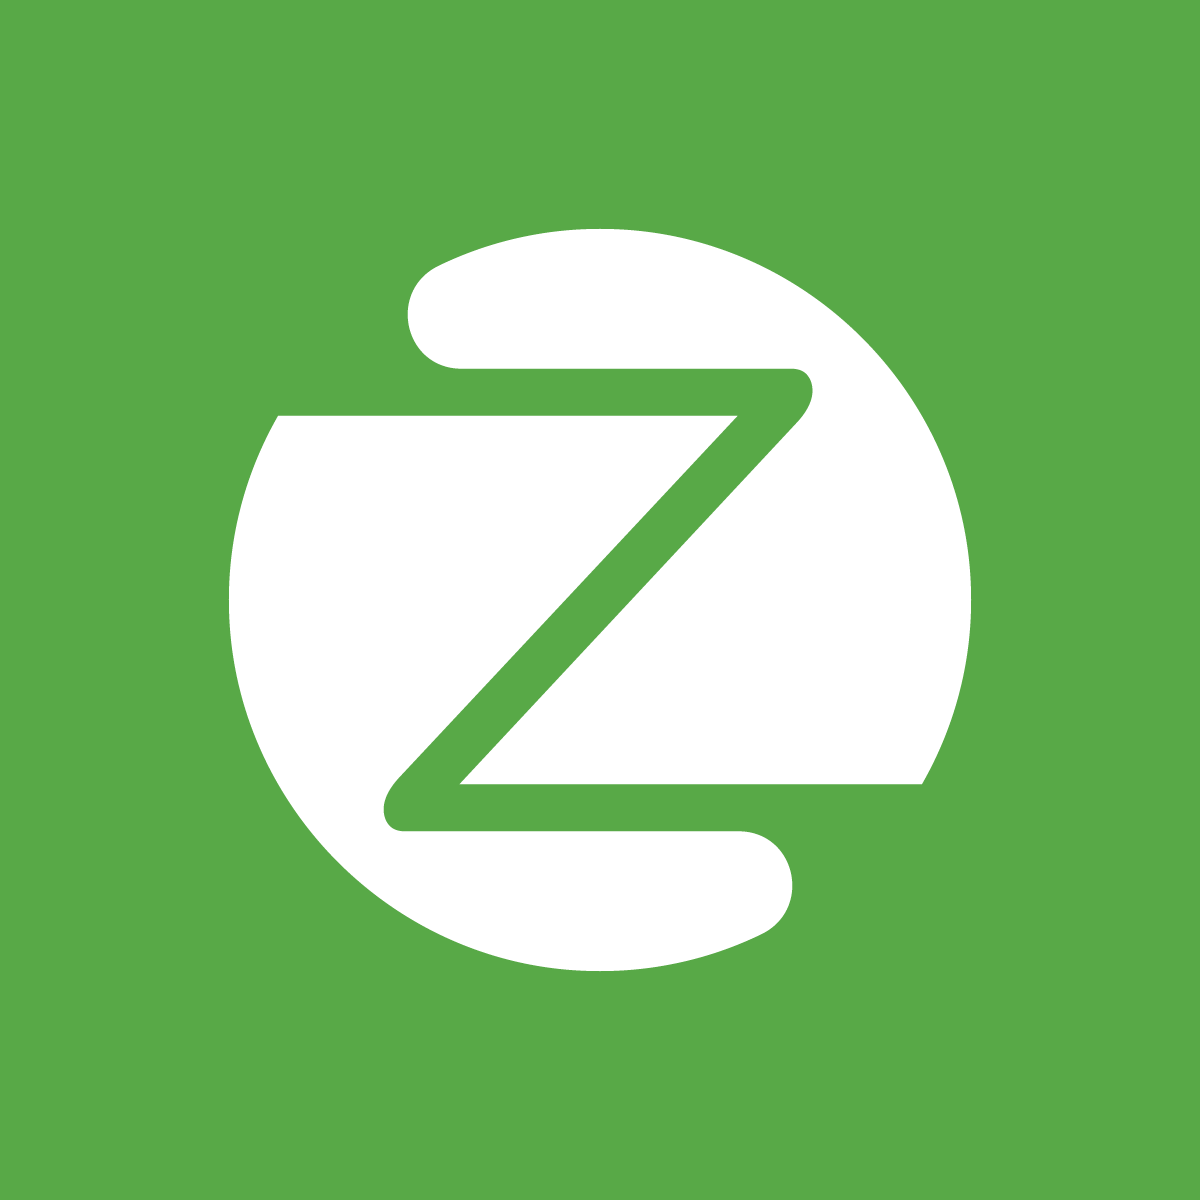 Hire Shopify Experts to integrate Zinrelo Loyalty Rewards app into a Shopify store